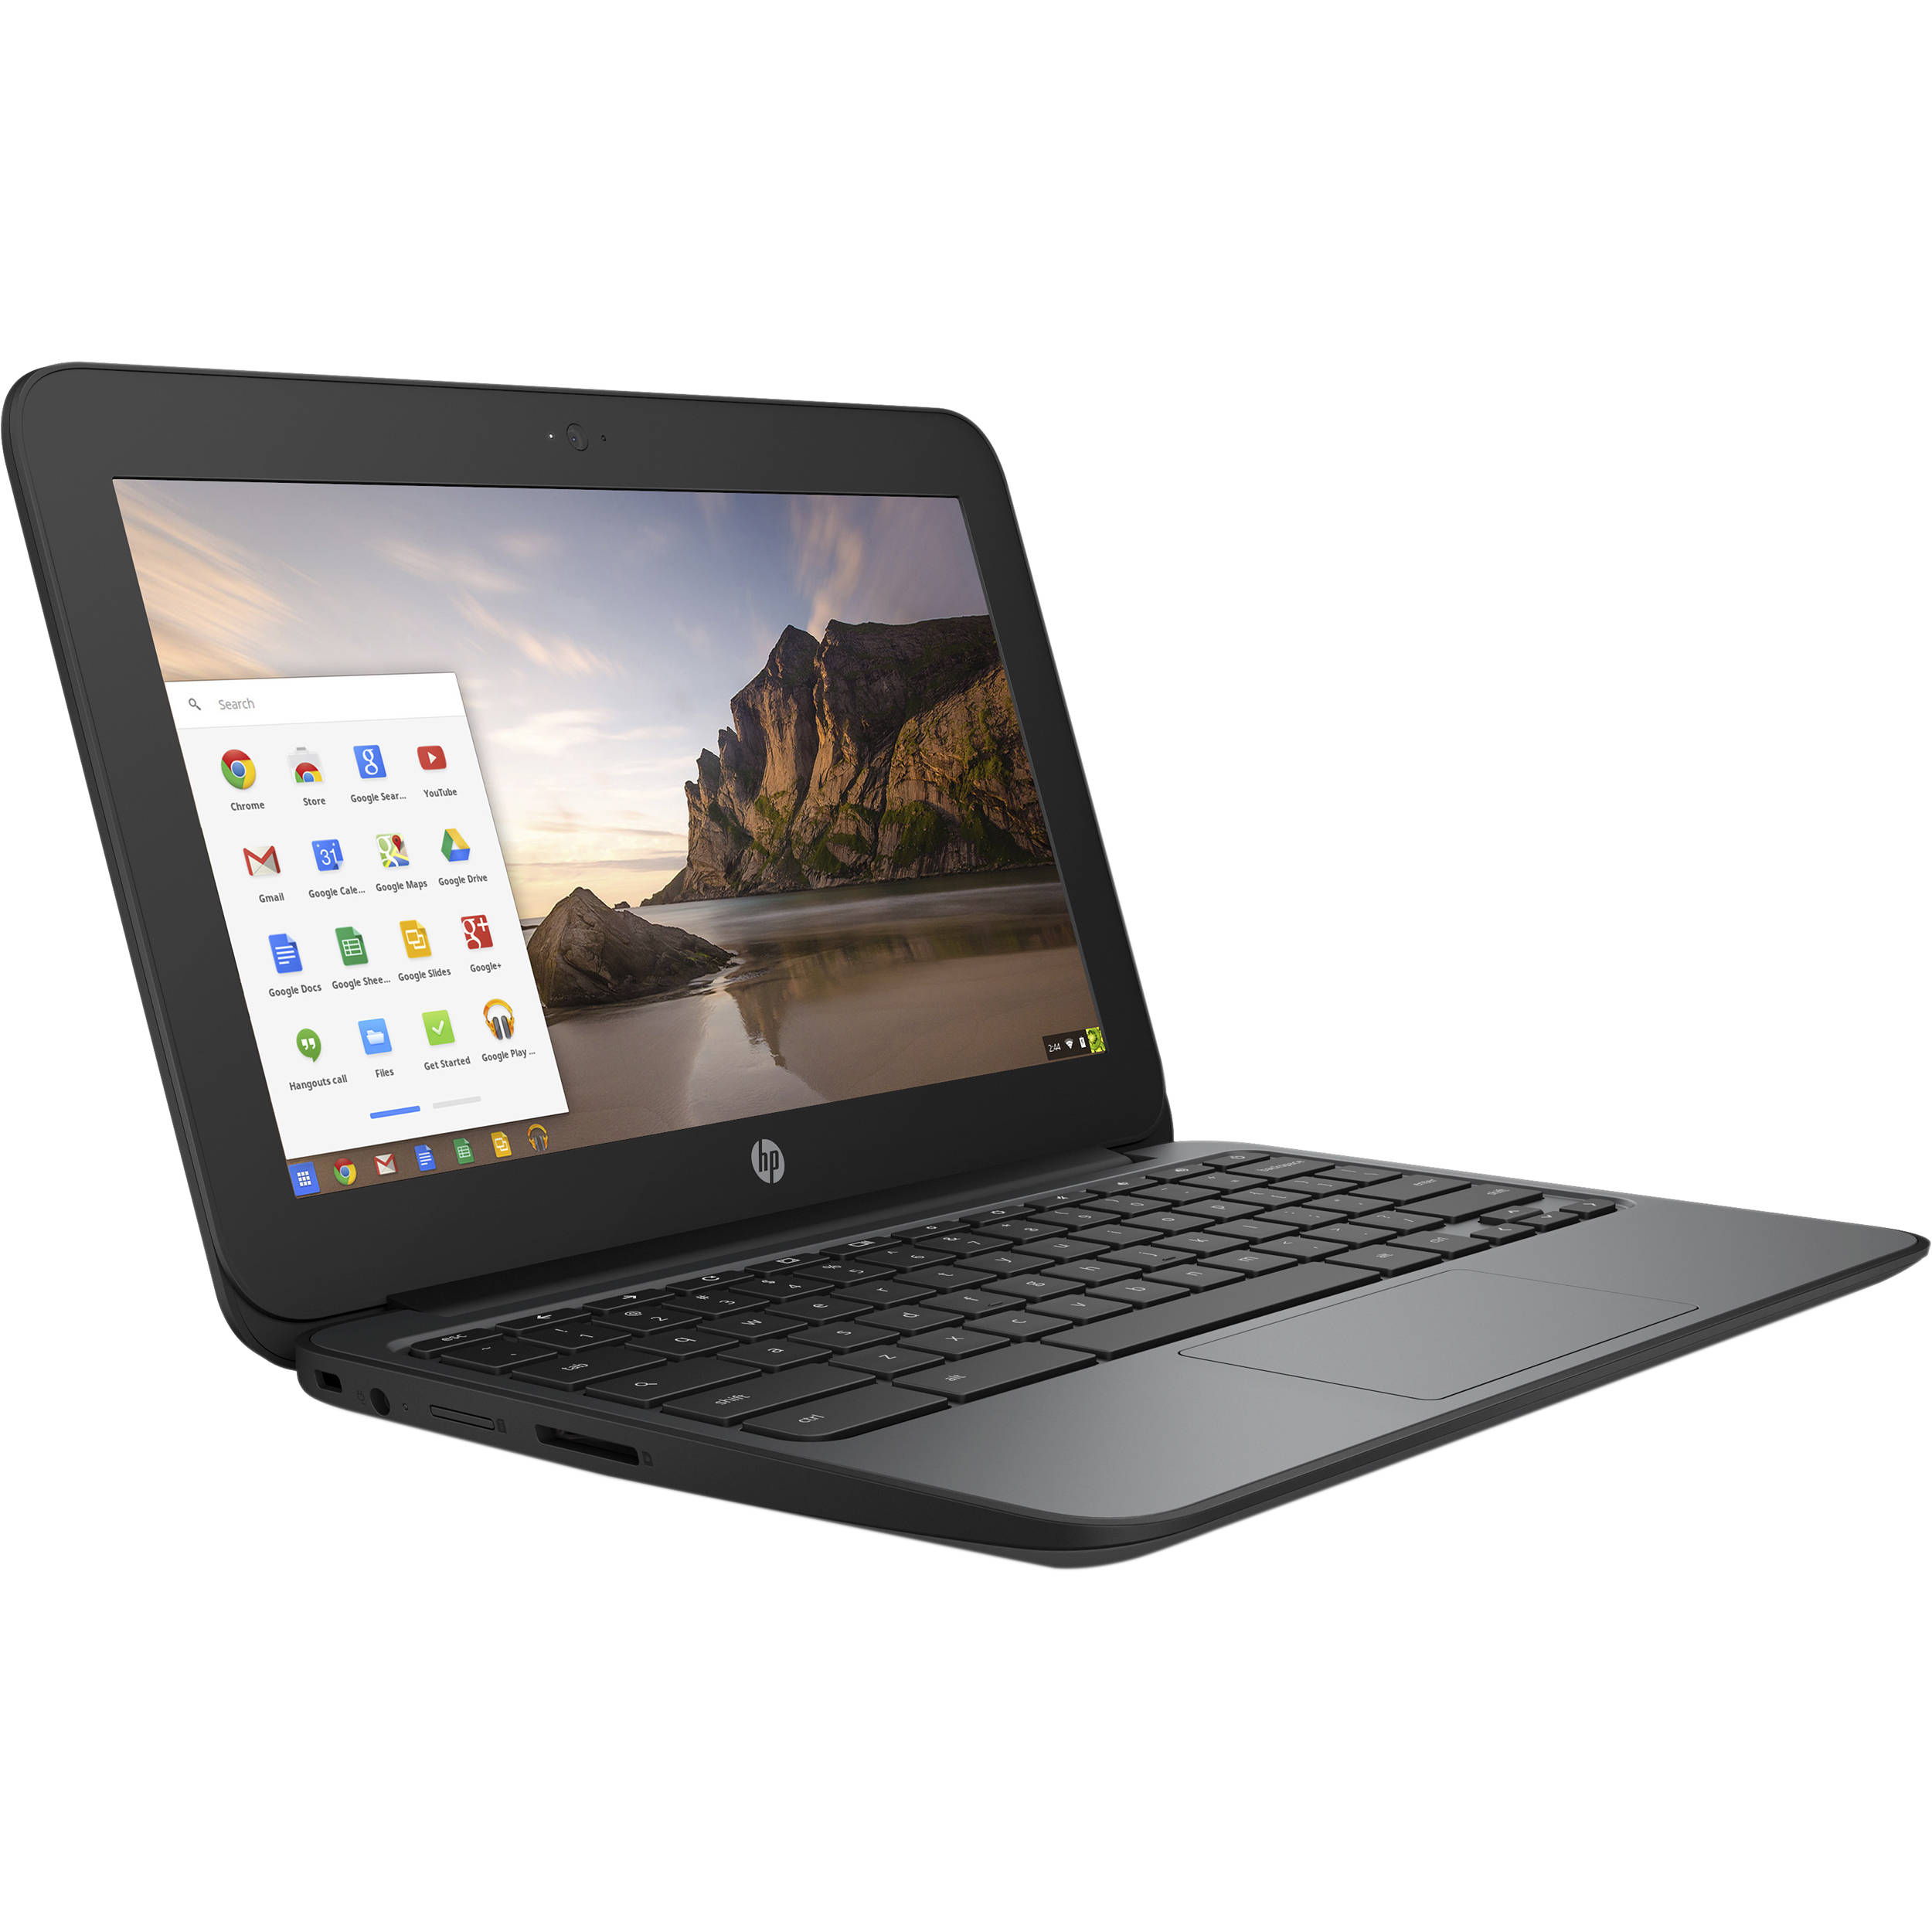 hp chromebook 11 g4 education edition review